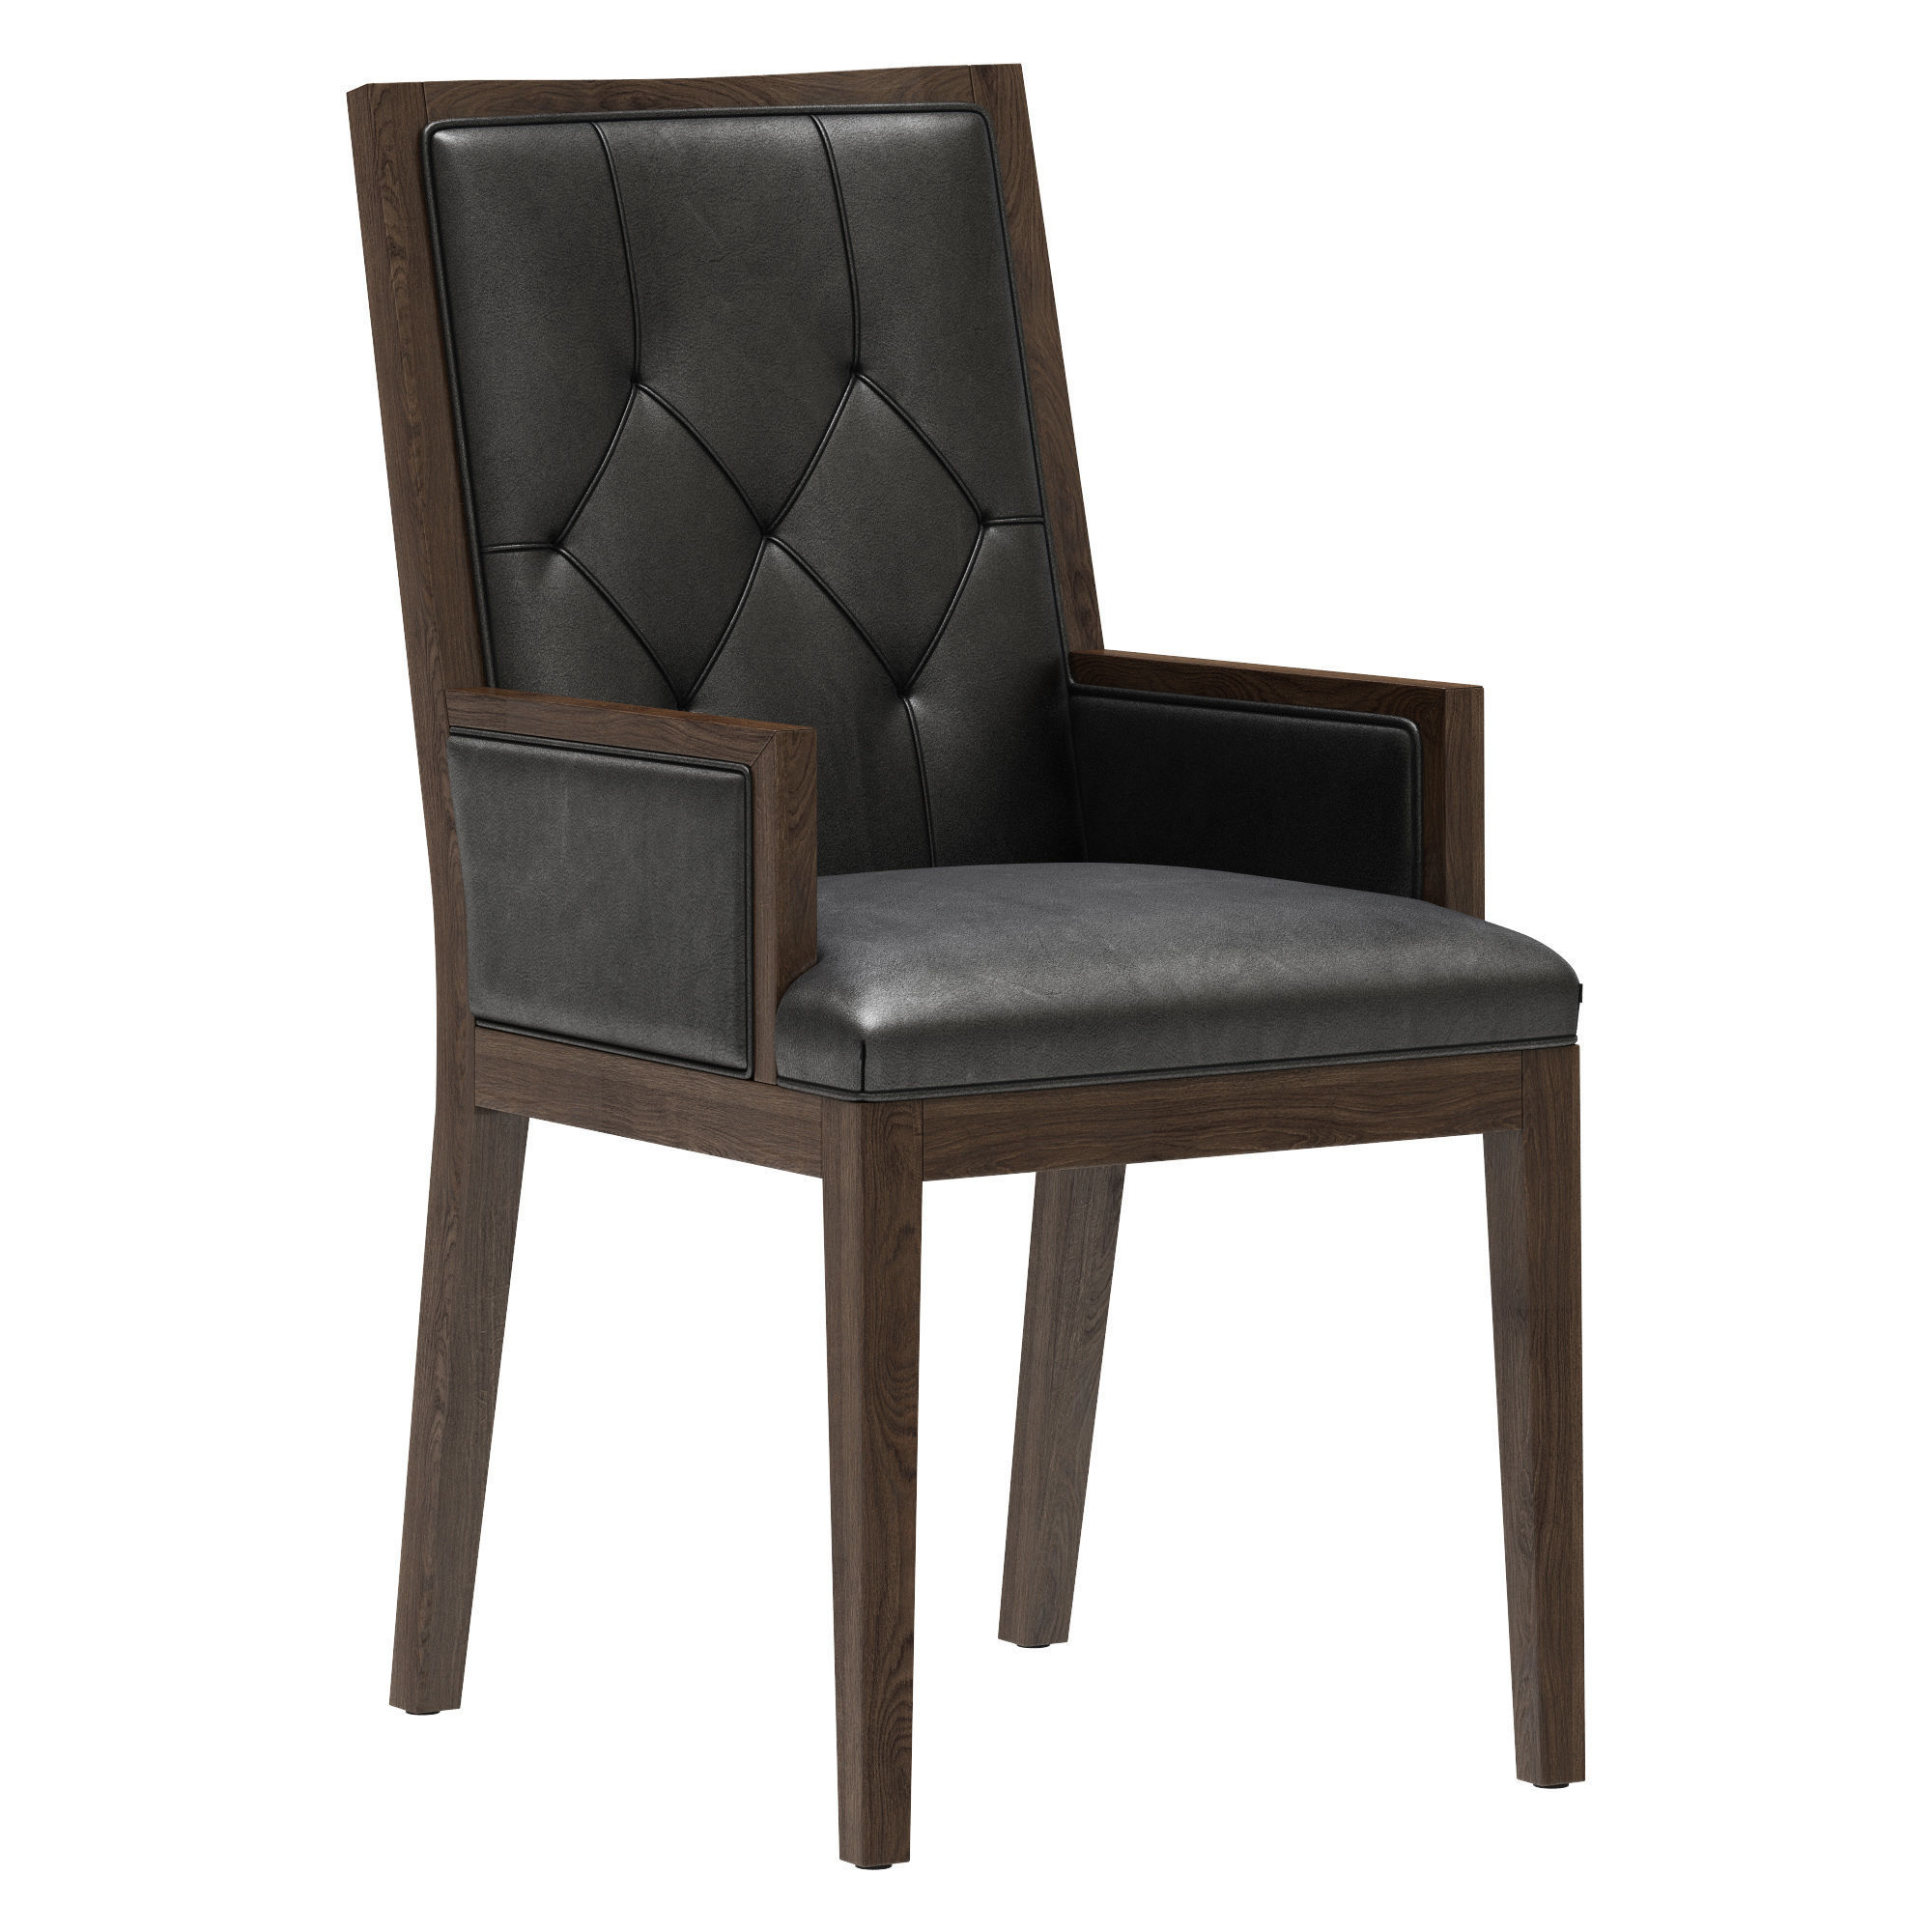 Restoration Hardware French Tufted Square Closed Armchair